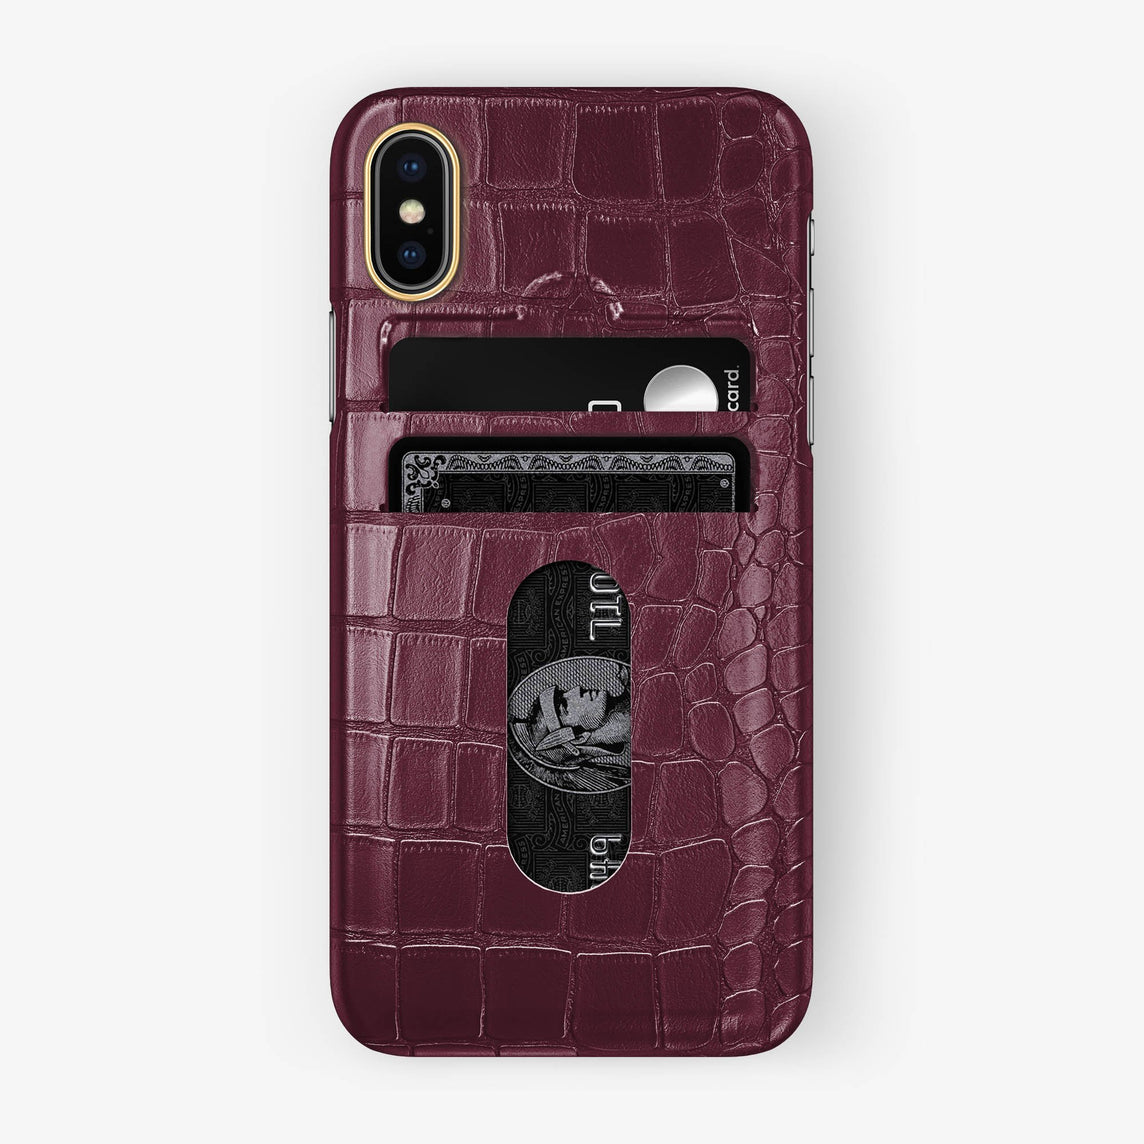 Alligator Card Holder Case iPhone X/Xs | Burgundy - Yellow Gold with-personalization